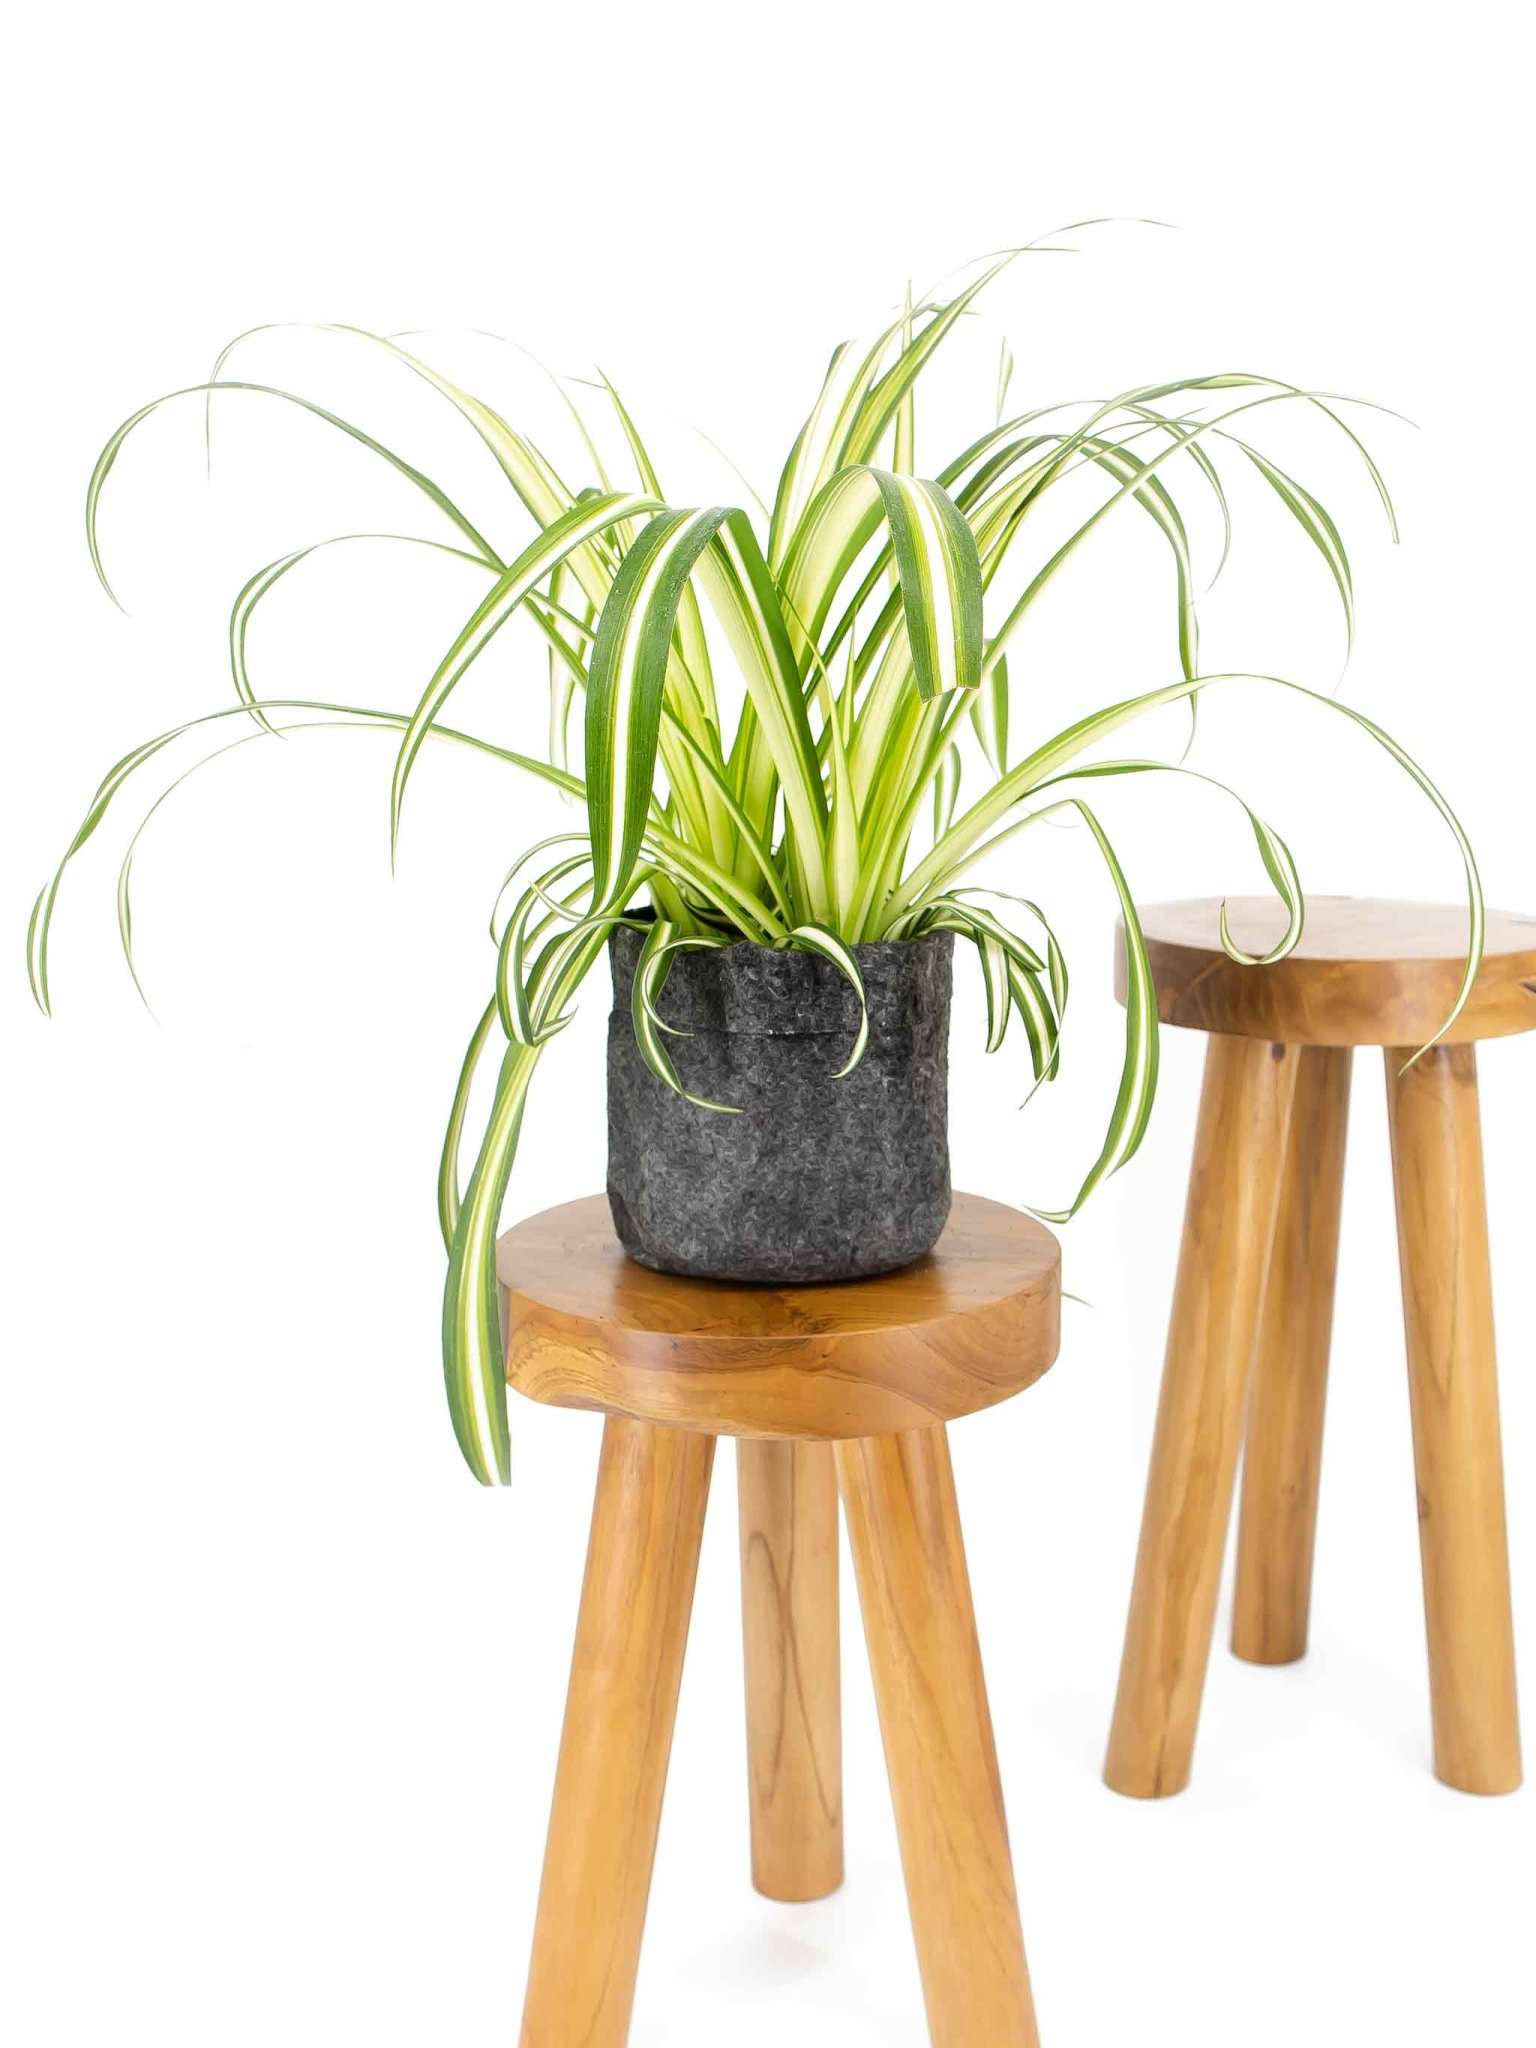 Spider plant on a wooden stool